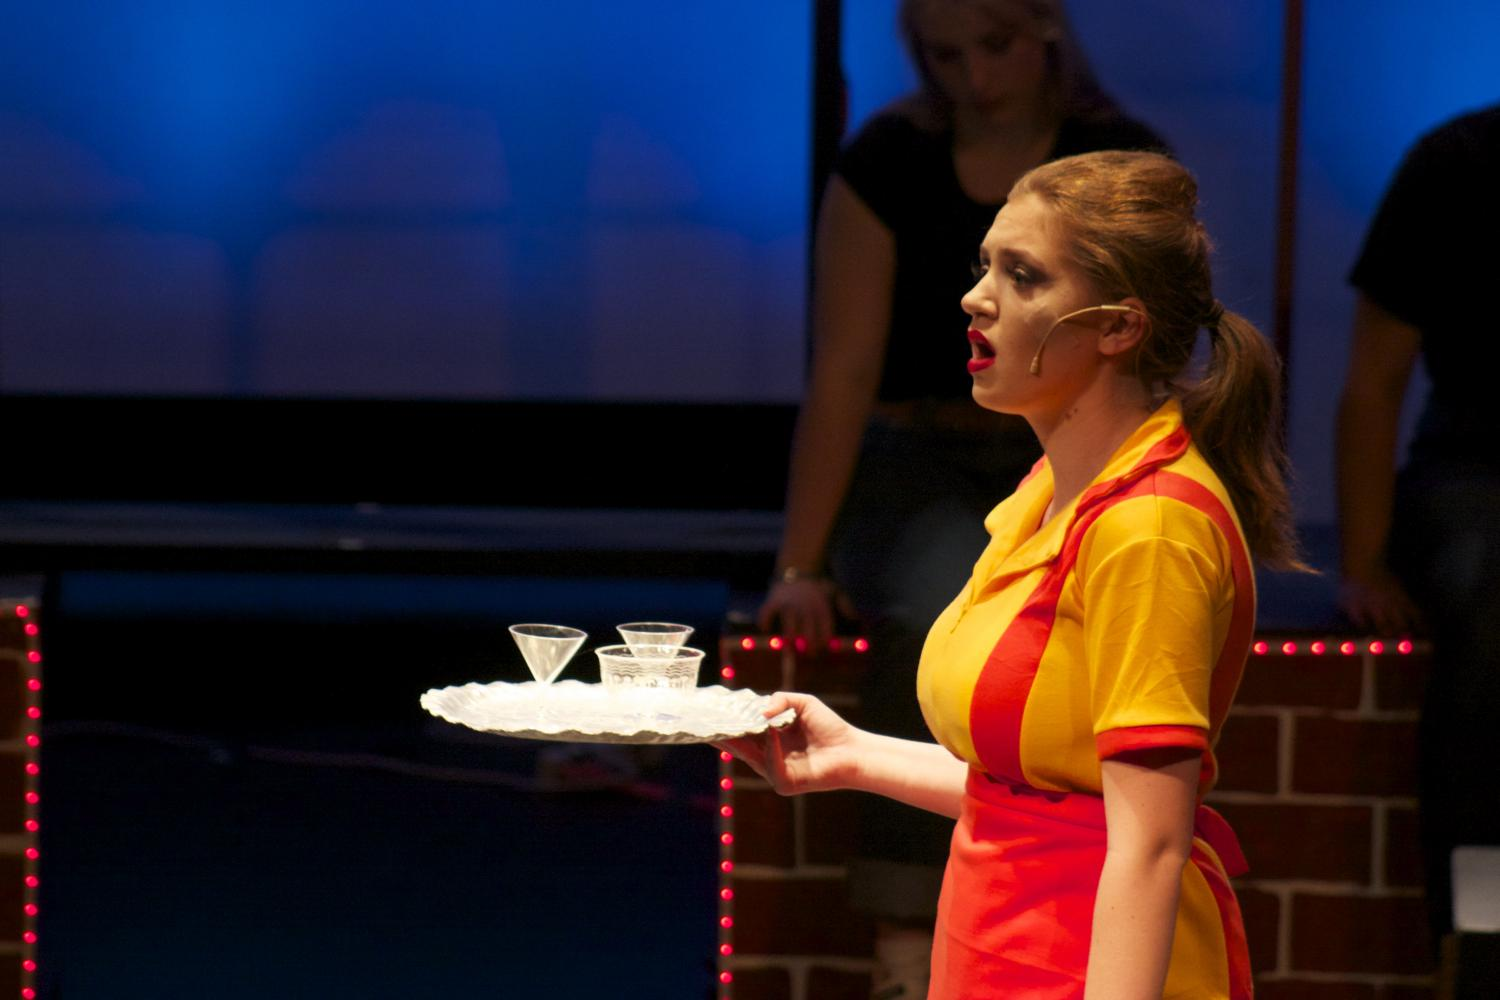 Sophomore+Claire+O%E2%80%99Connor+in+%E2%80%9CIt%E2%80%99s+an+Art%E2%80%9D+in+her+role+as+a+spunky+Italian+waitress+struggling+to+get+by.++Many+students+sang+solos+about+the+working+class.+%E2%80%9CWorking%E2%80%9D+ran+through+from+April+27-April+29.